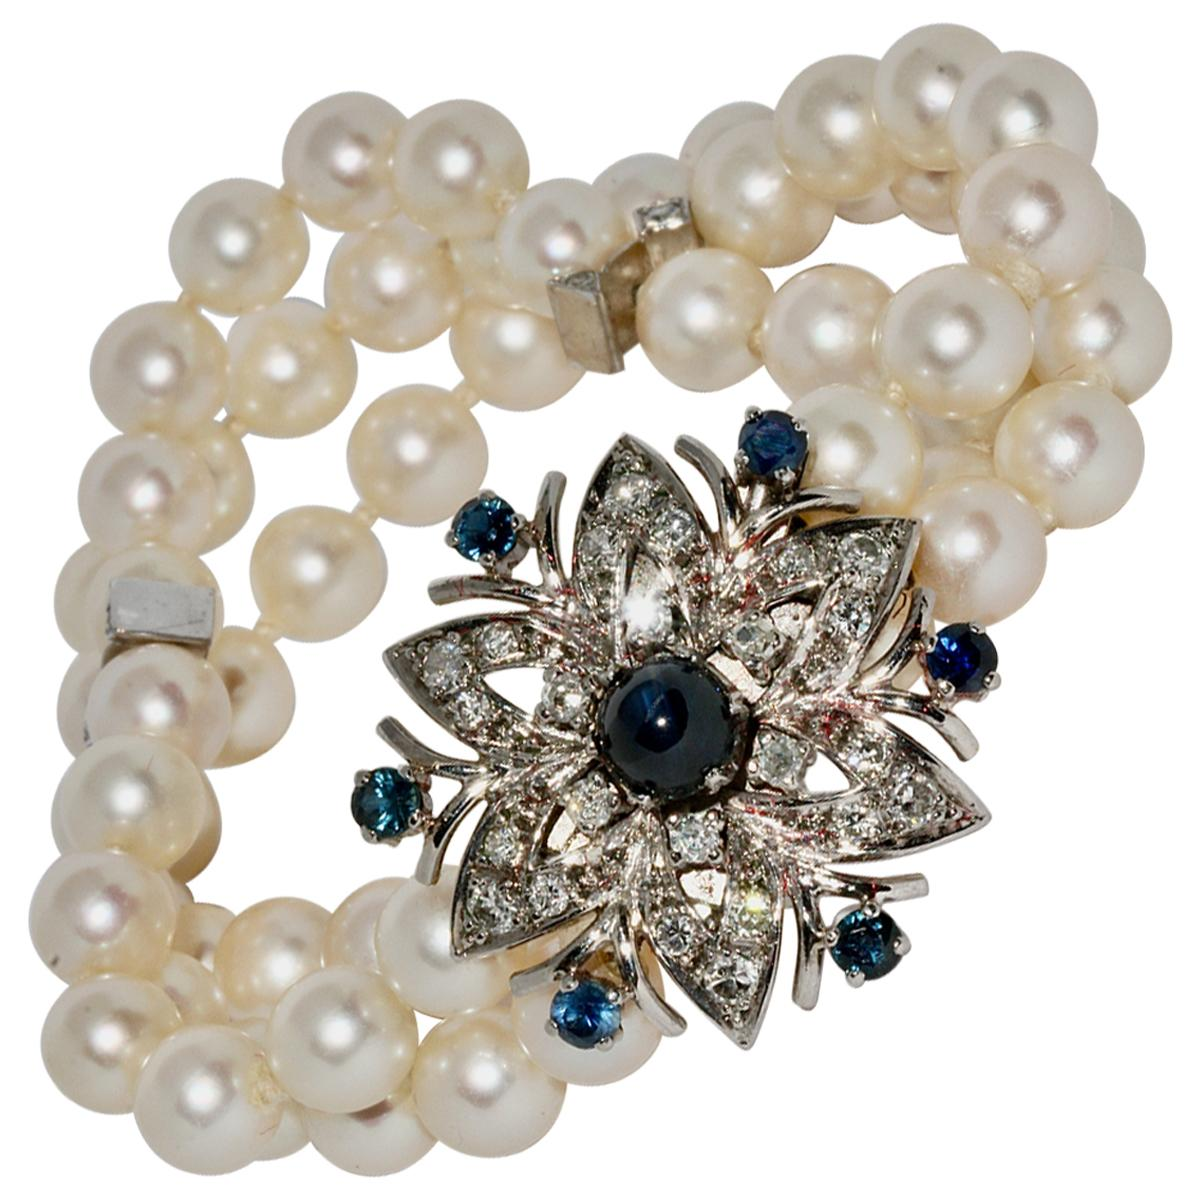 Pearl Bracelet with Large White Gold Clasp, Set with Sapphires and Diamonds